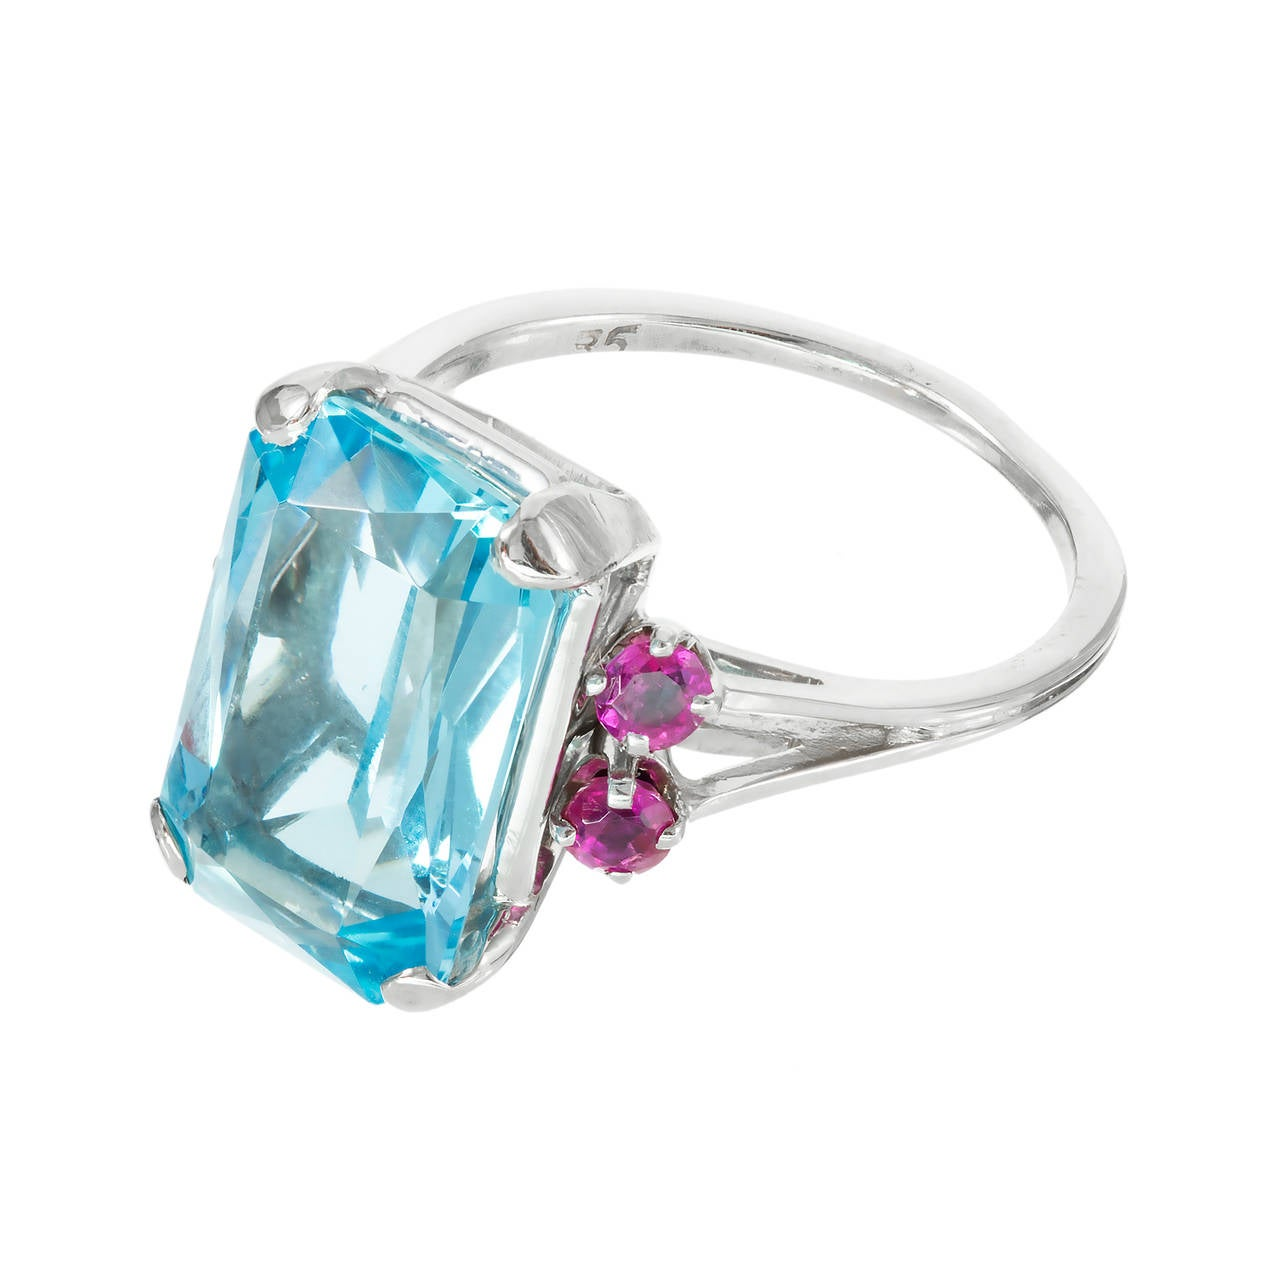 1950  gem blue untreated natural 6.03ct Aqua in a simple white gold ring with bright red Rubies, well-polished. Excellent color combinations.